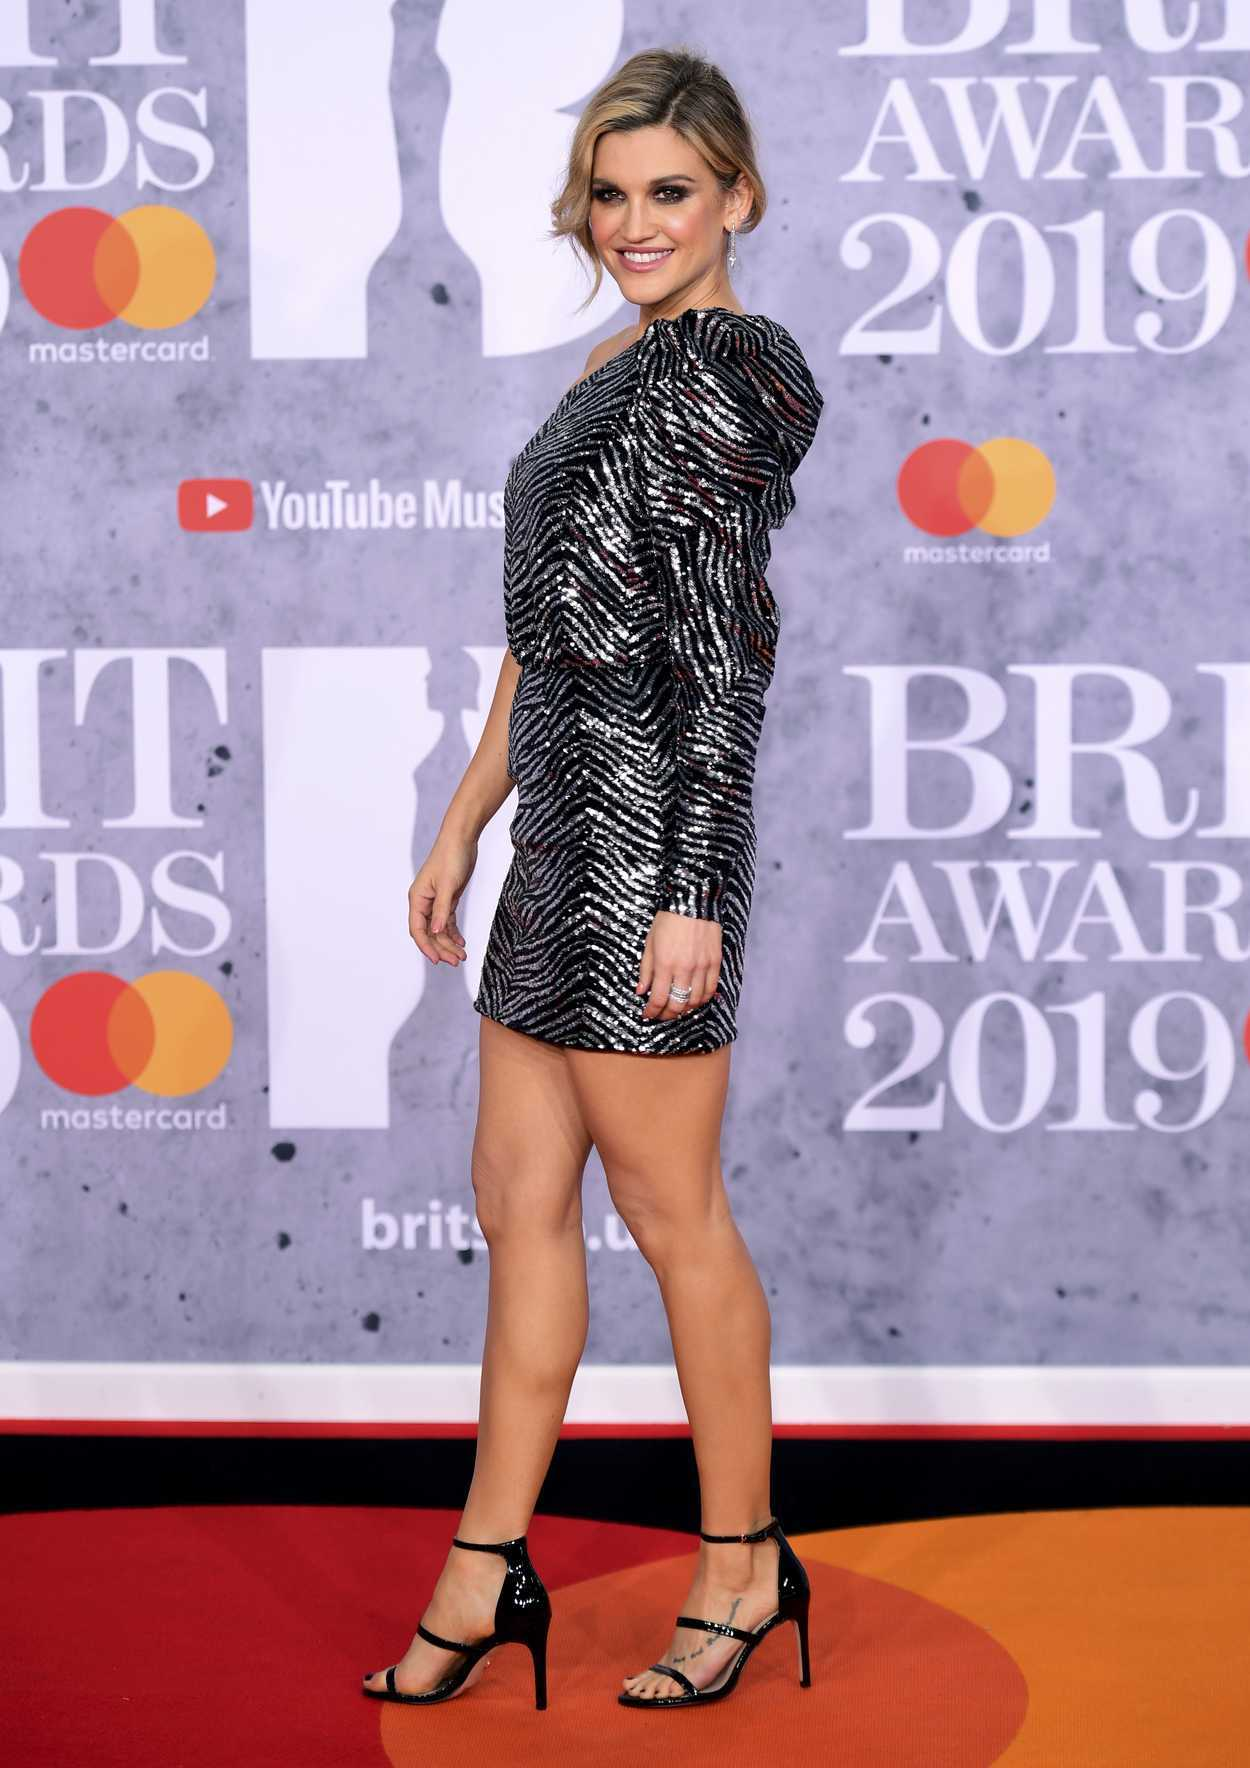 Ashley O Boyle Pro Makeup Design: Ashley Roberts Attends The 39th Brit Awards At The O2